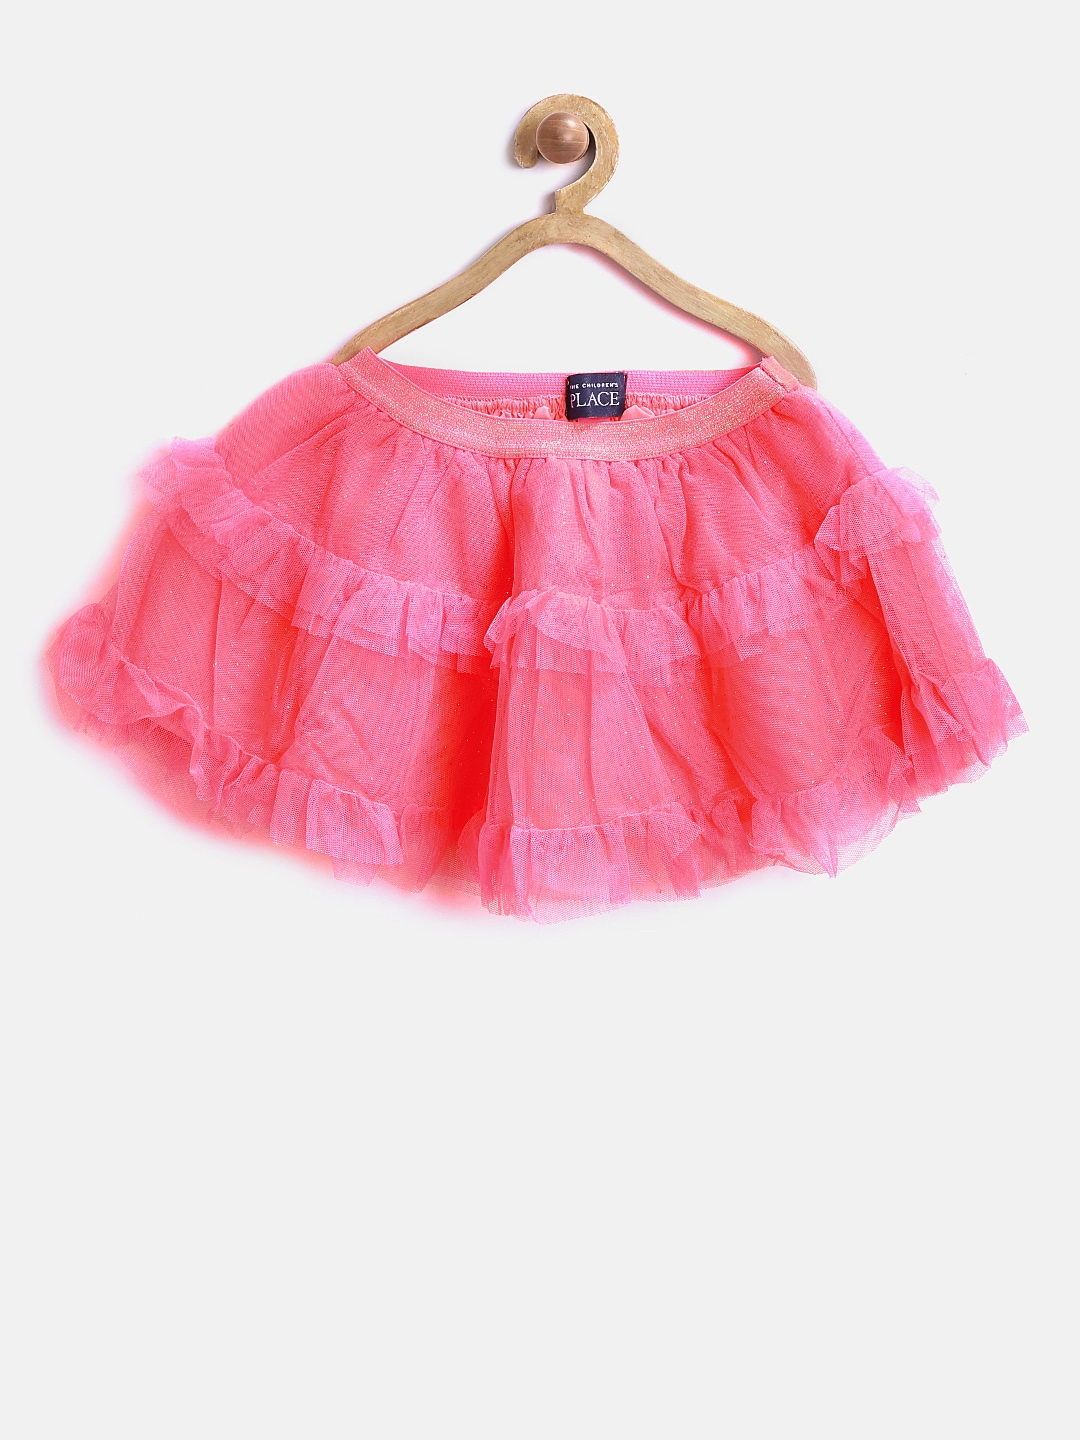 The Childrens Place Girls Pink Net Tiered Flared Skirt